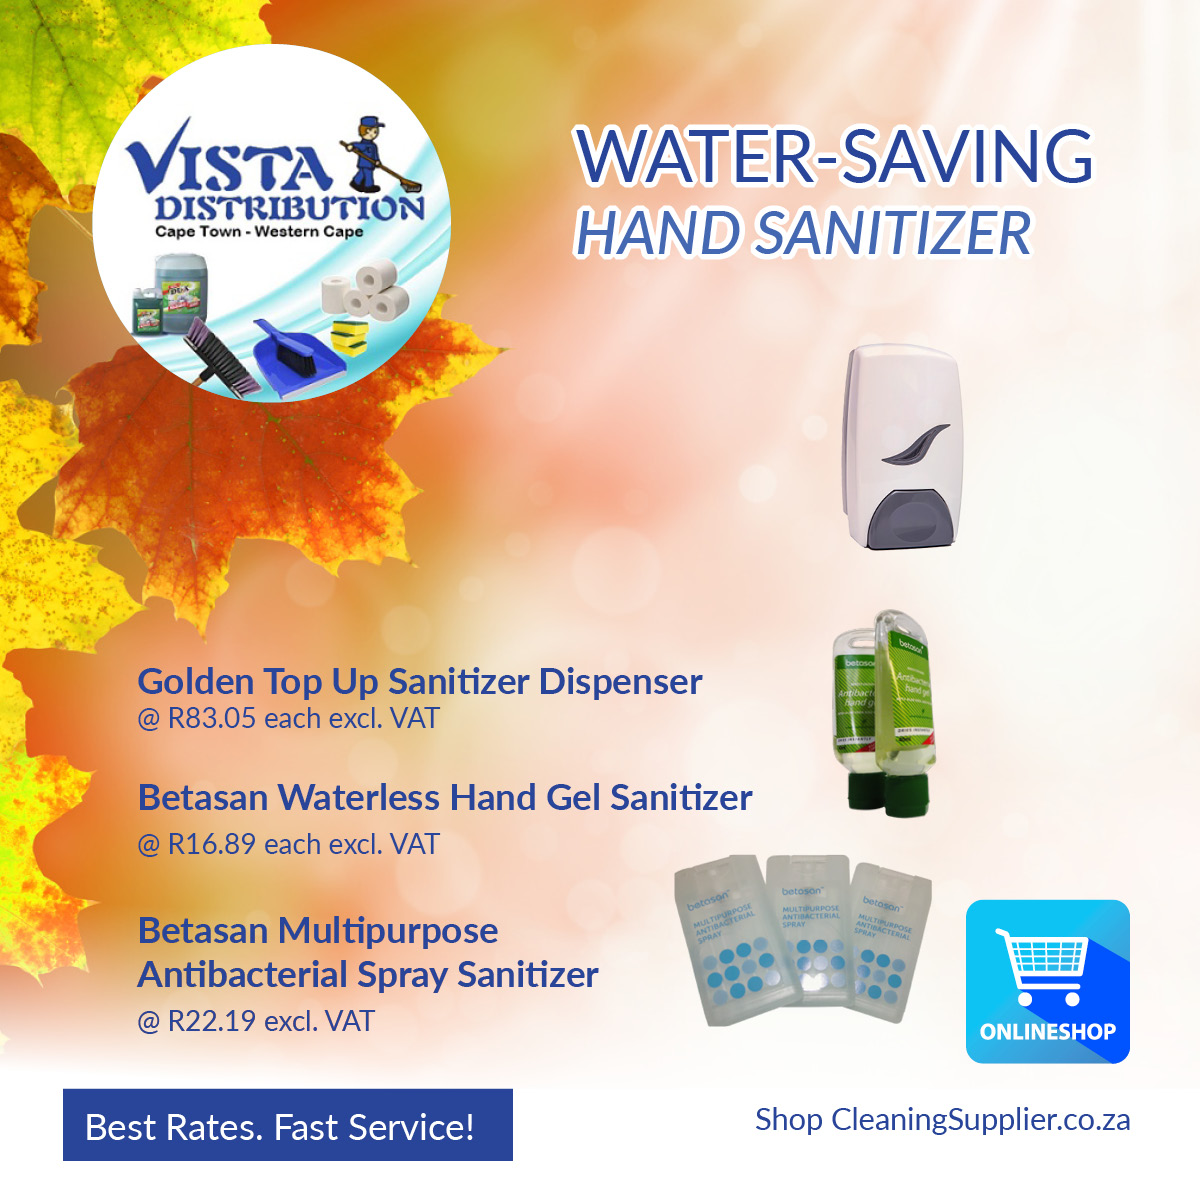 WATER-SAVING PRODUCTS! Water-less Hand Santizers, sanitizer dispensers and more!